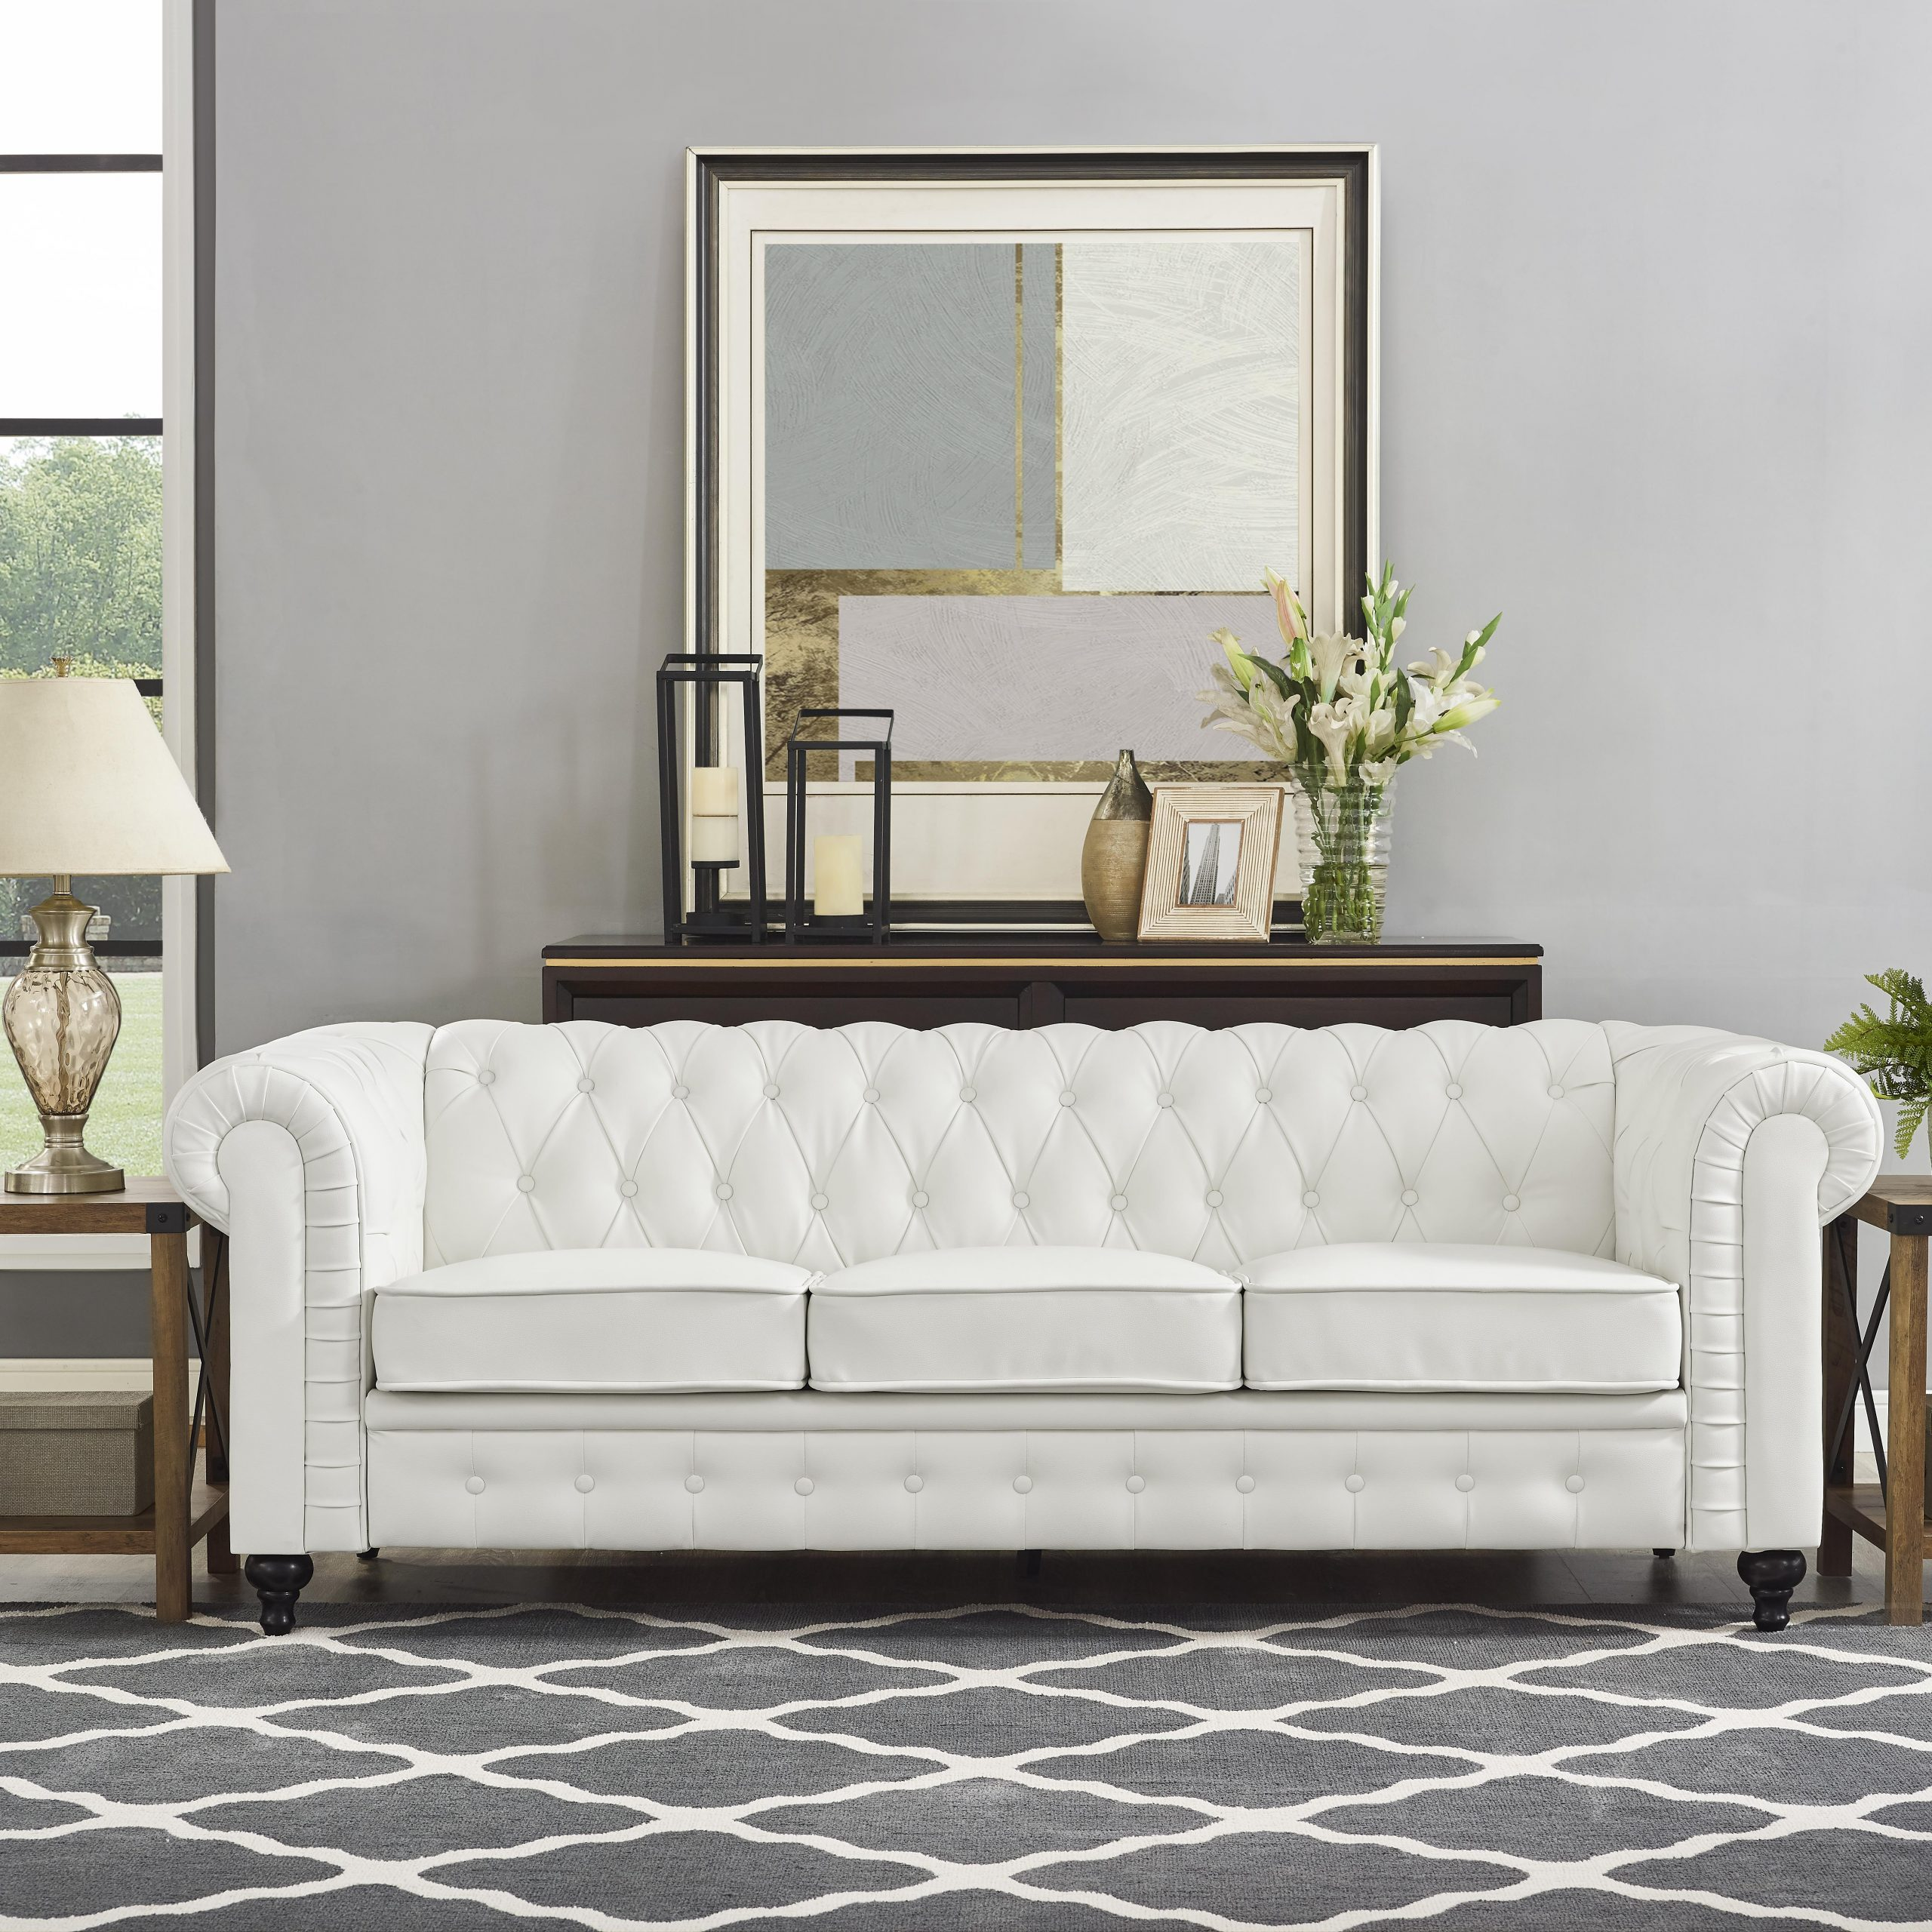 Naomi Home Emery Chesterfield Sofa & Accent Chair With Within Chesterfield Sofas (View 1 of 15)